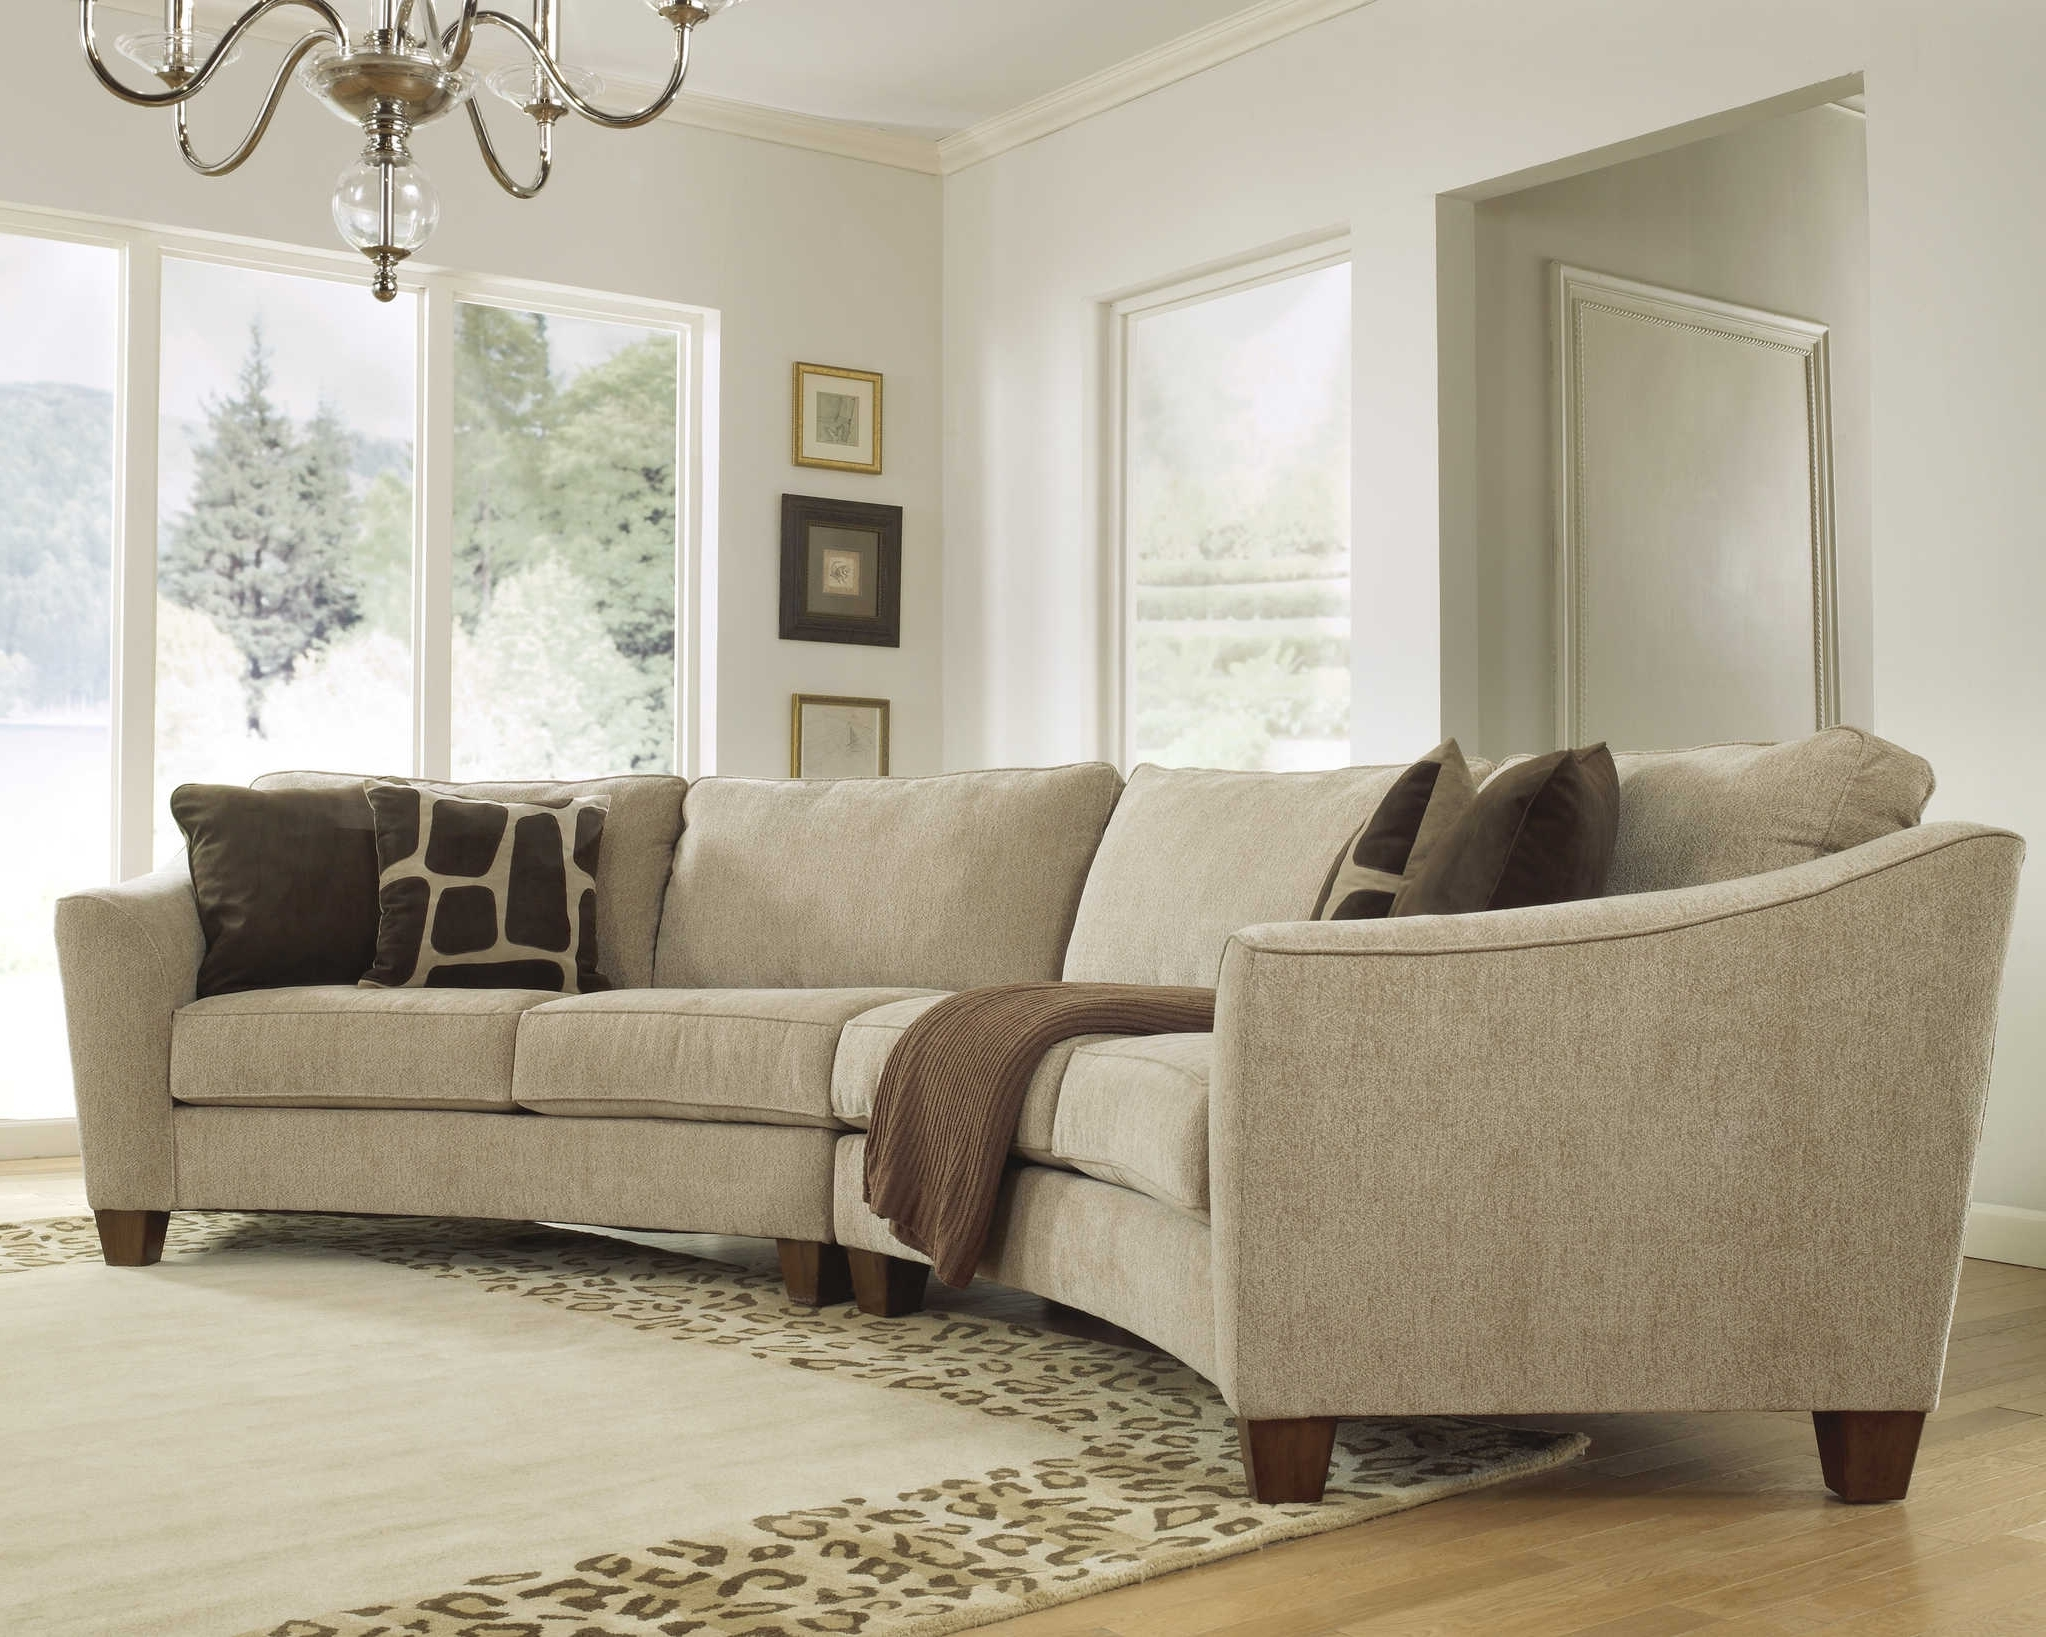 Favorite Wichita Ks Sectional Sofas With Bedroom: Ashley Furniture Wichita Ks Cozy Beautiful White Sofa (View 2 of 15)